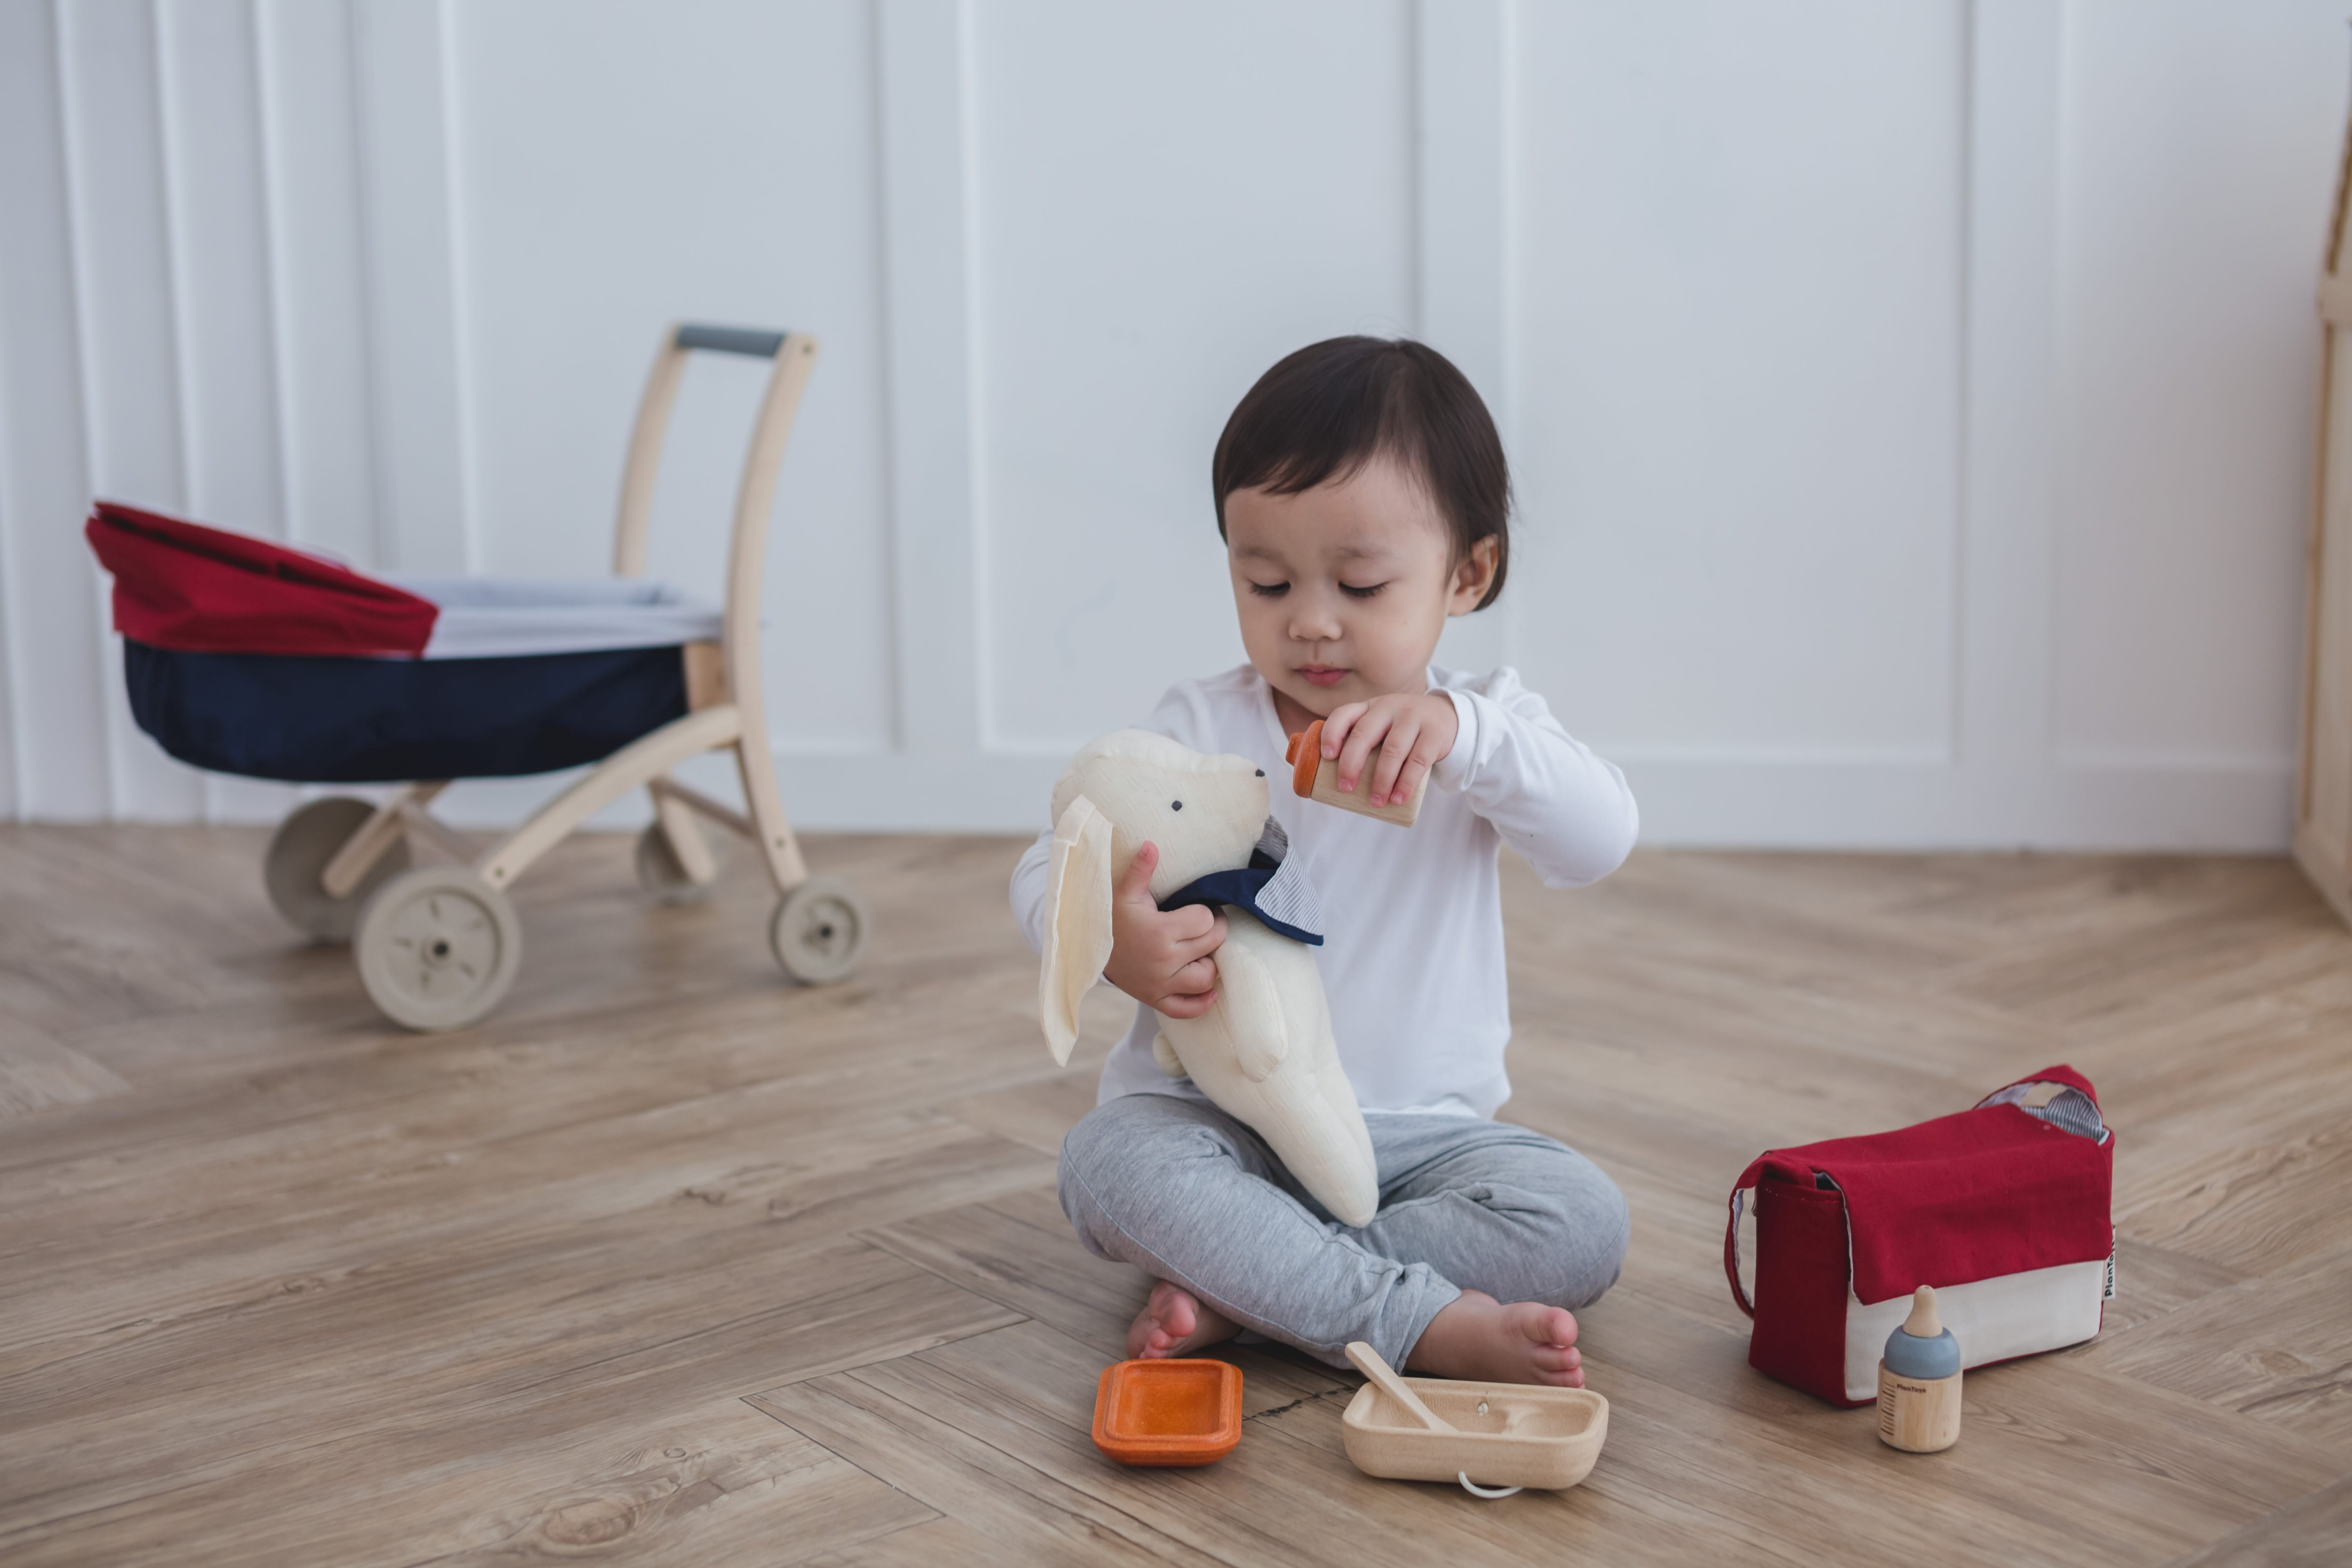 3499_PlanToys_BABY_FEEDING_SET_Pretend_Play_Imagination_Coordination_Language_and_Communications_Social_Fine_Motor_2yrs_Wooden_toys_Education_toys_Safety_Toys_Non-toxic_5.jpg